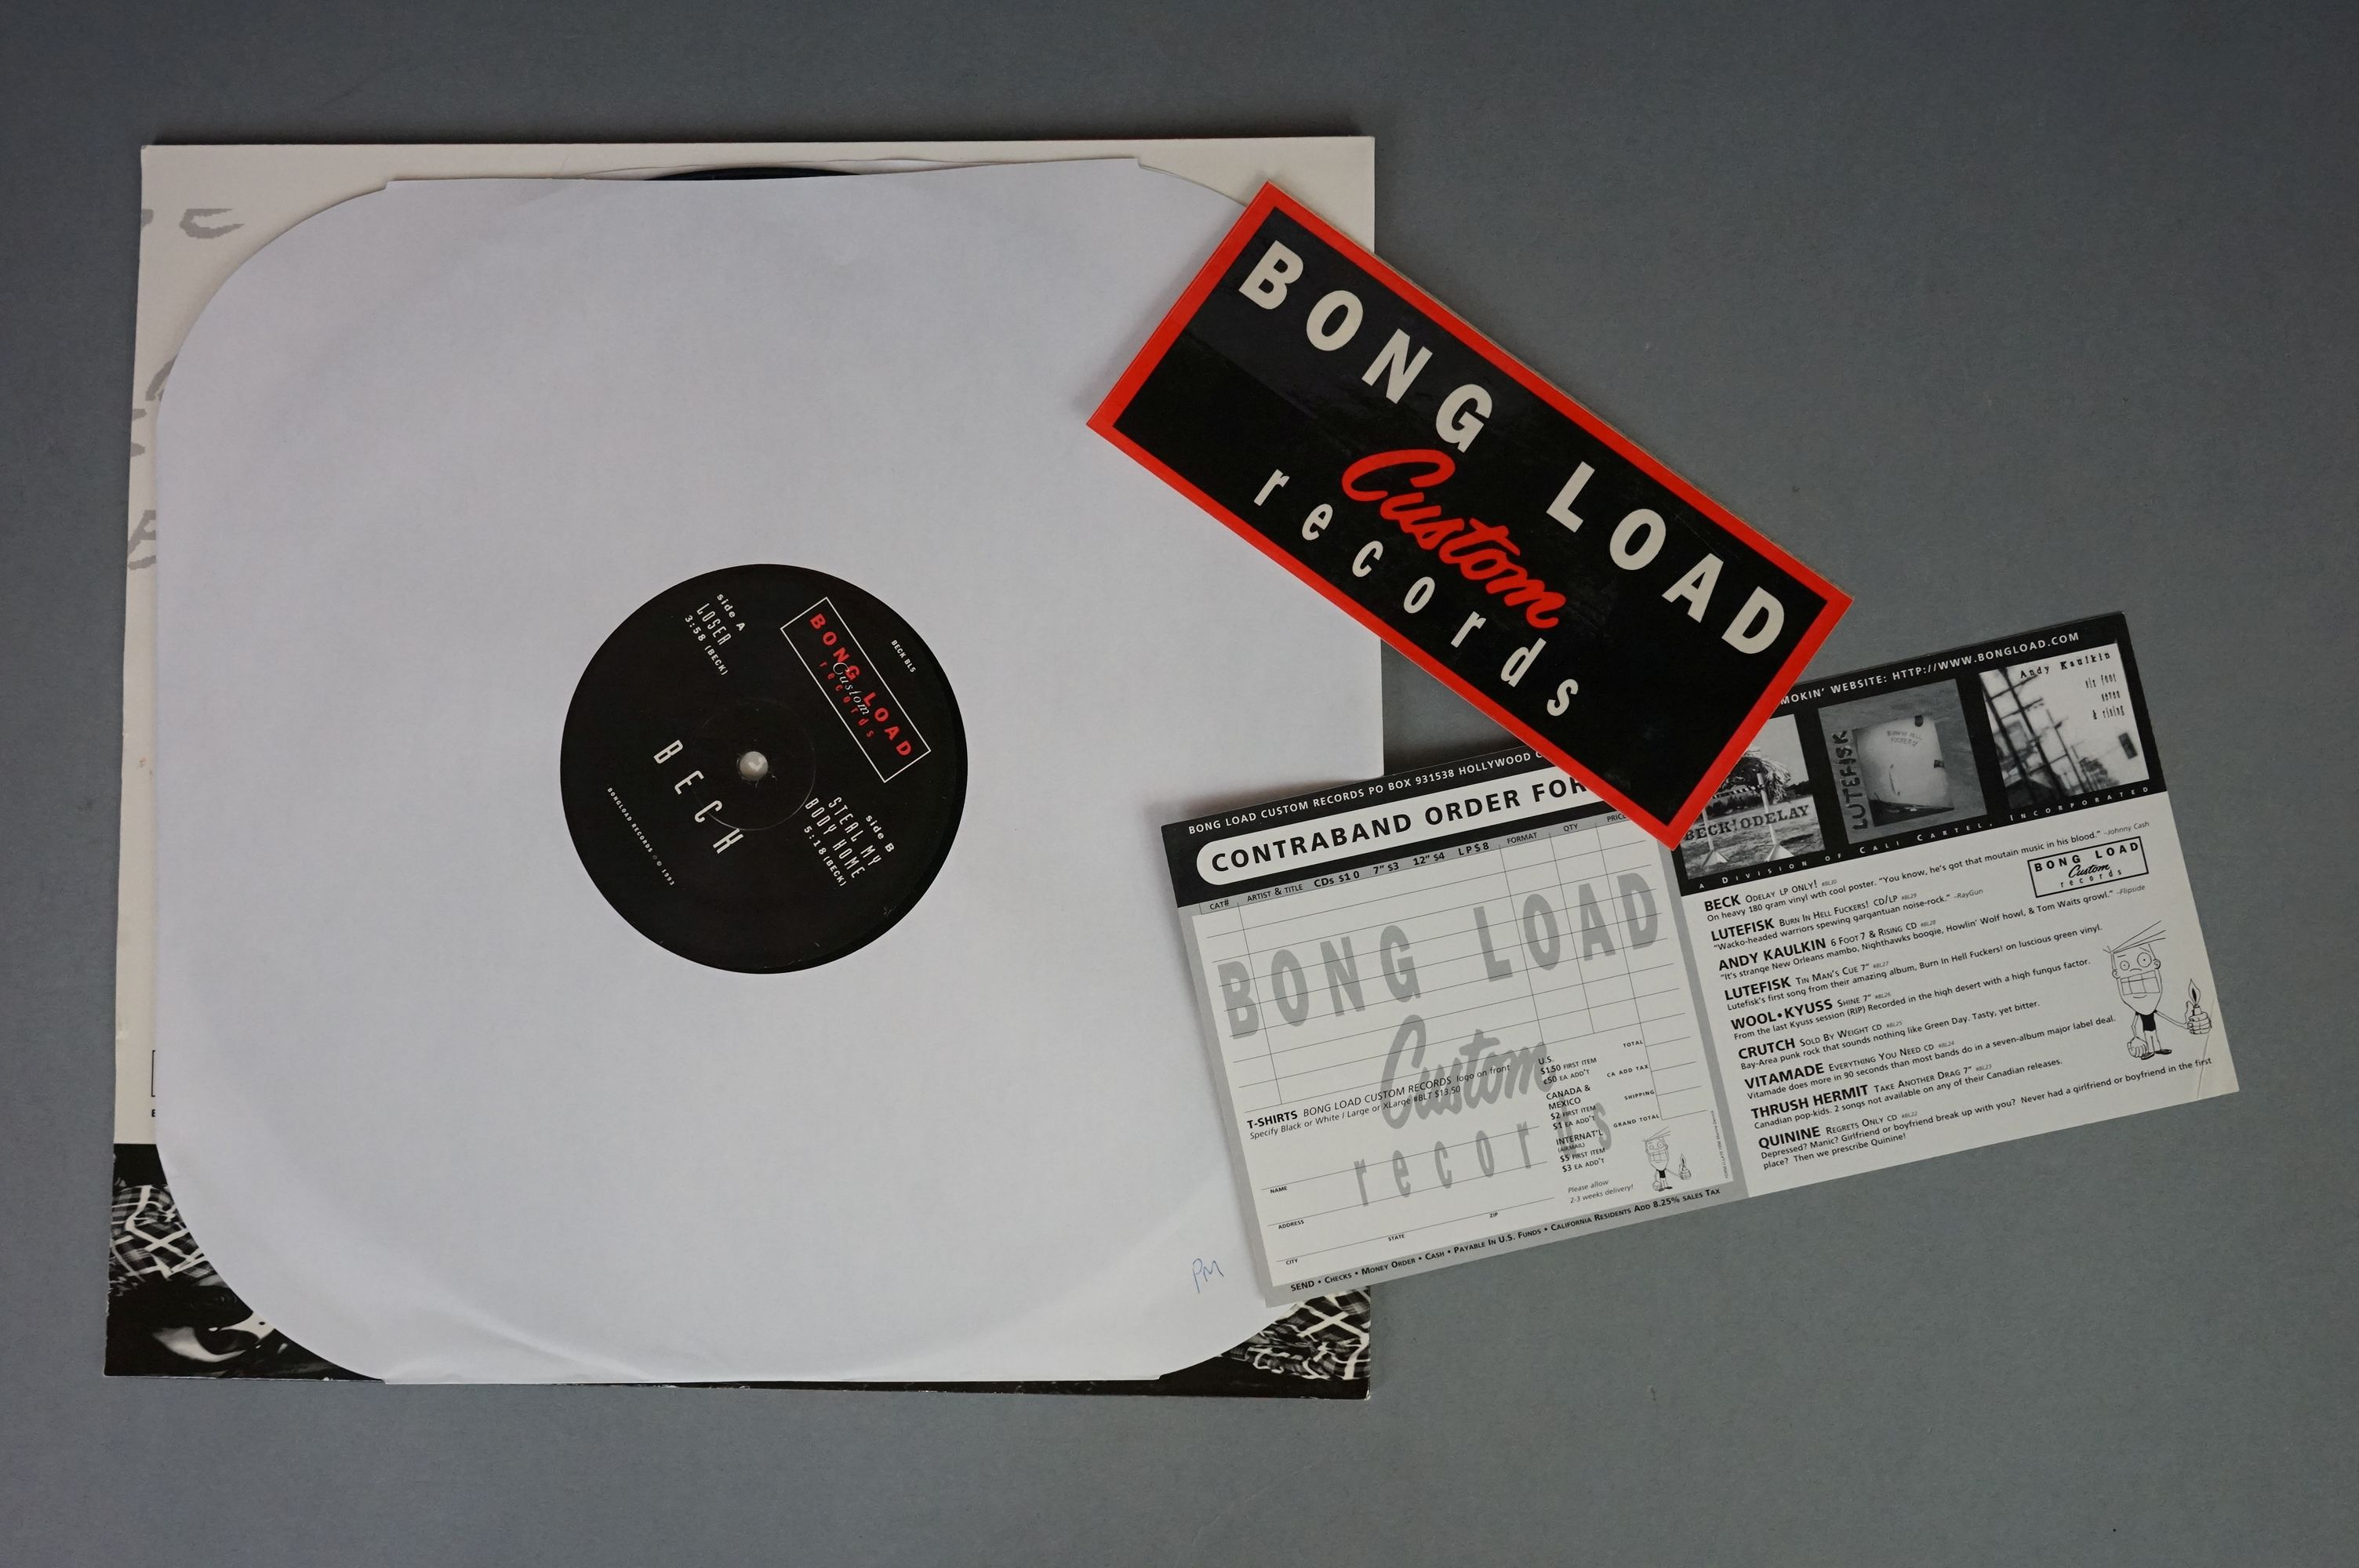 """Vinyl - Beck - Two 12"""" singles to include Loser BL5 and Where It's At, both vg+ with vendor initials - Image 4 of 6"""